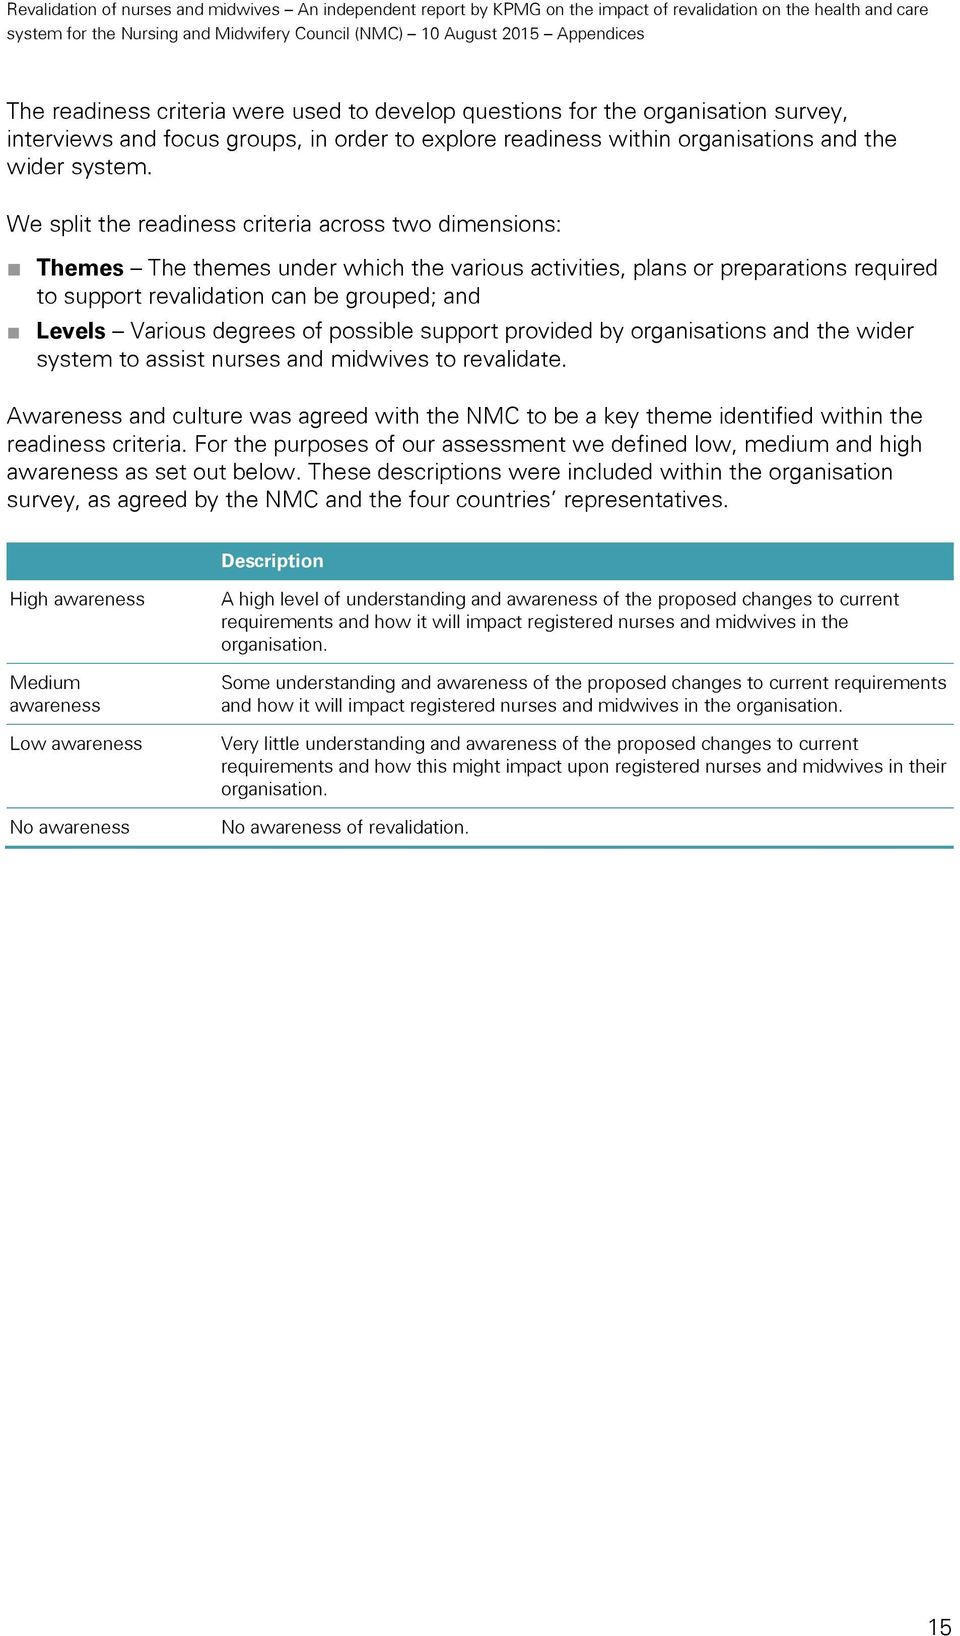 degrees of possible support provided by organisations and the wider system to assist nurses and midwives to revalidate.